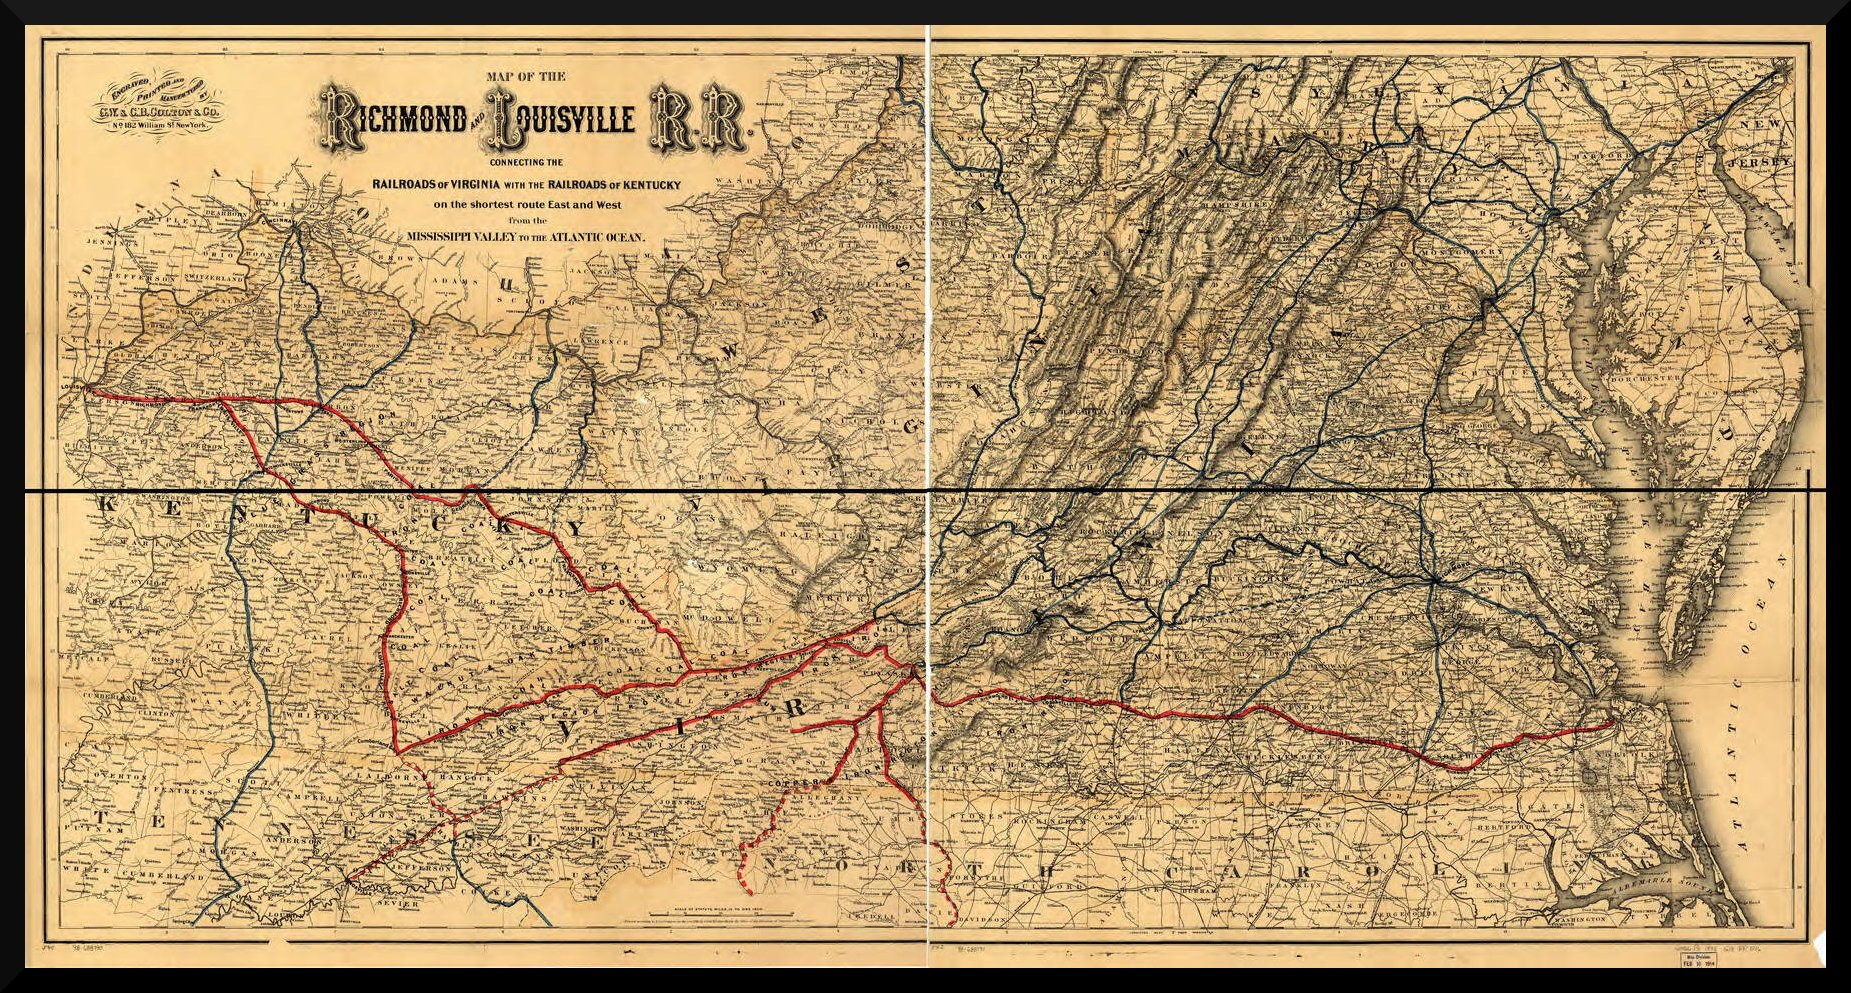 Henry County Kentucky Maps